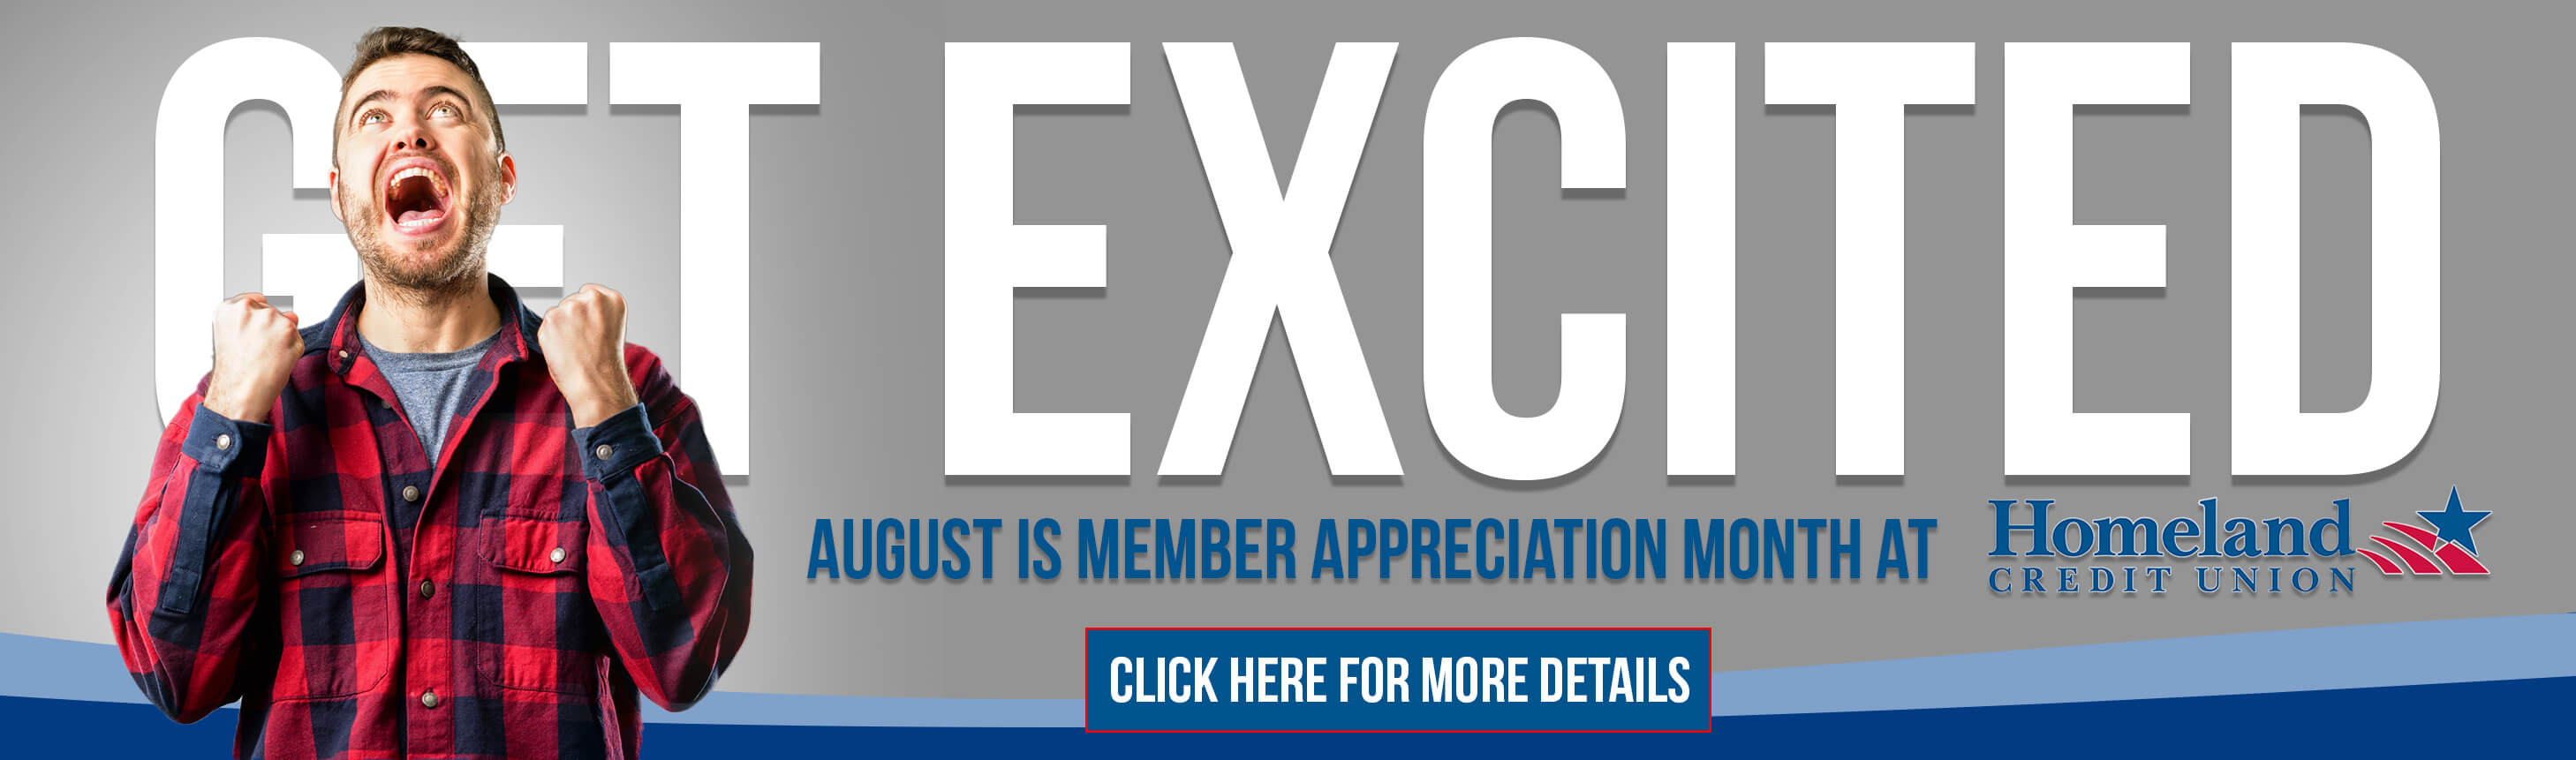 Get Excited August is Member Appreciation month at Homeland Credit Union Click Here for More Details